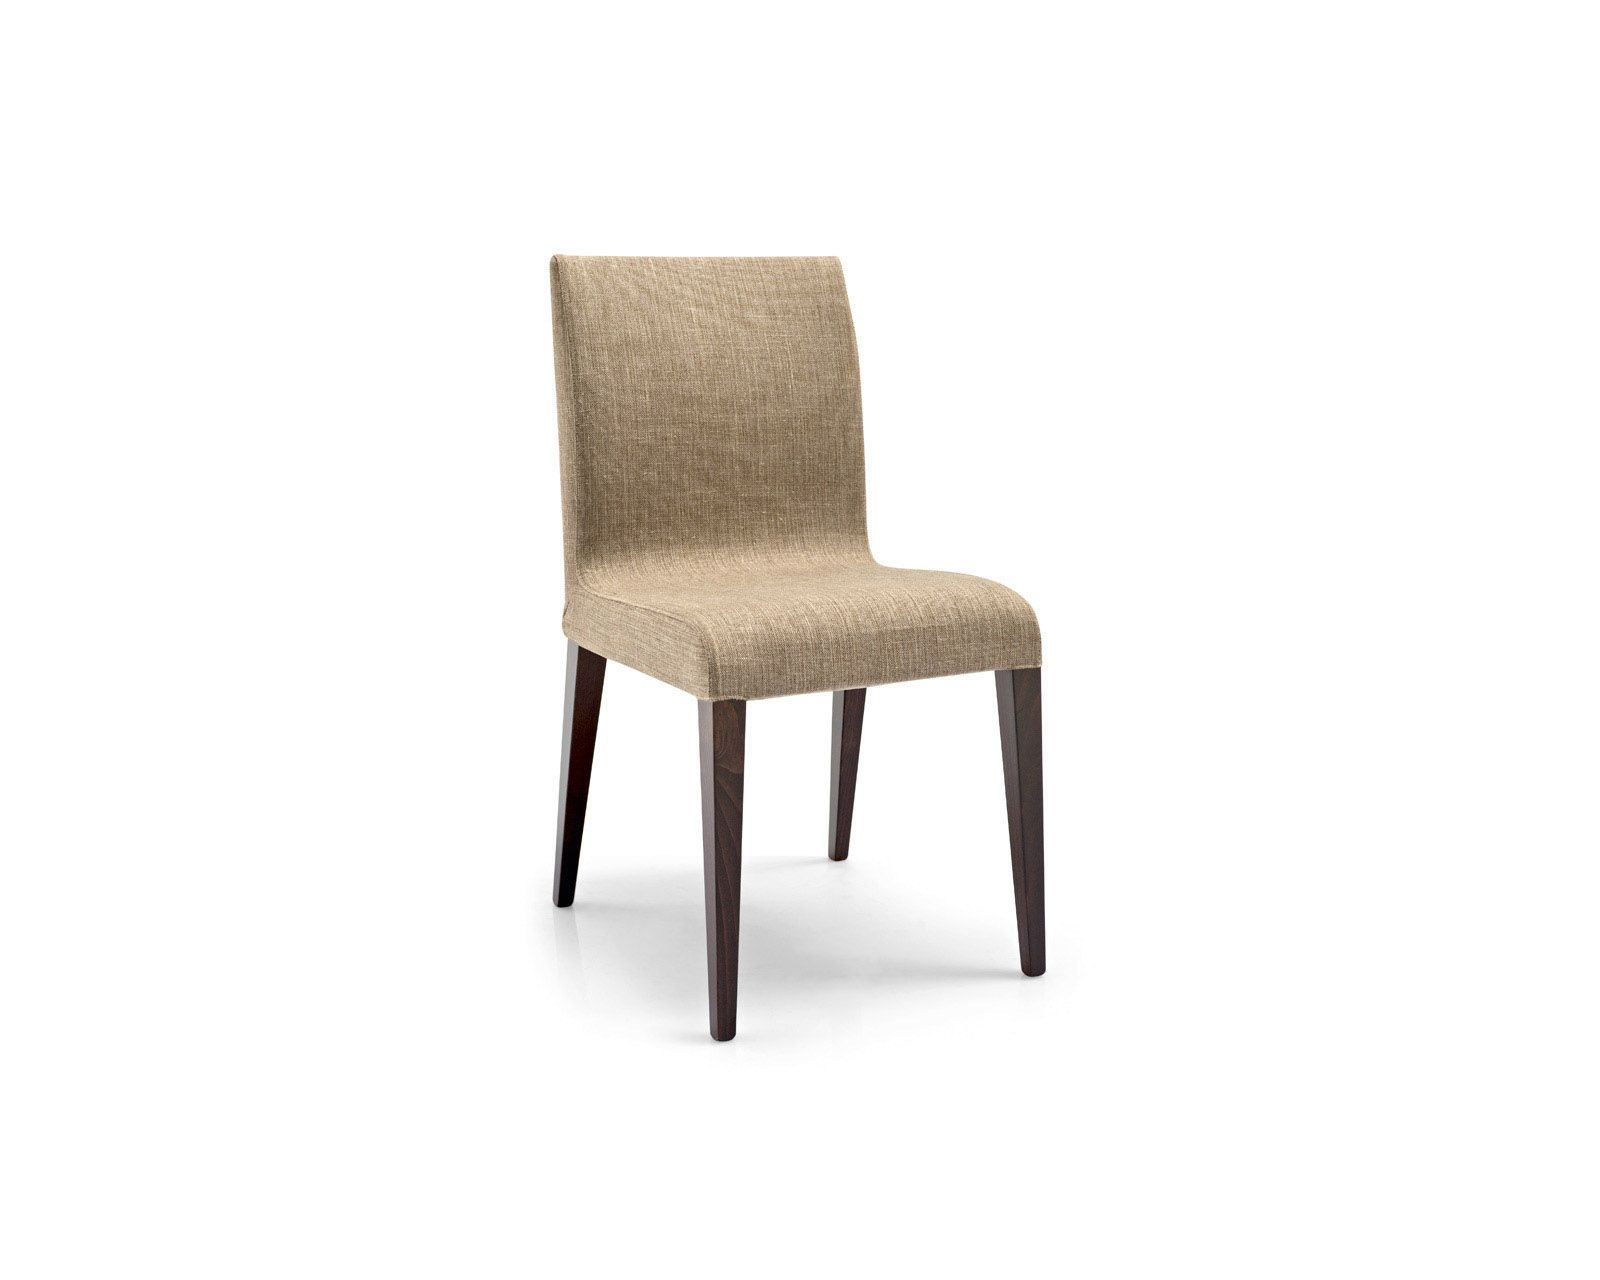 Eudora Upholstered Chair With Removable Cover Calligaris